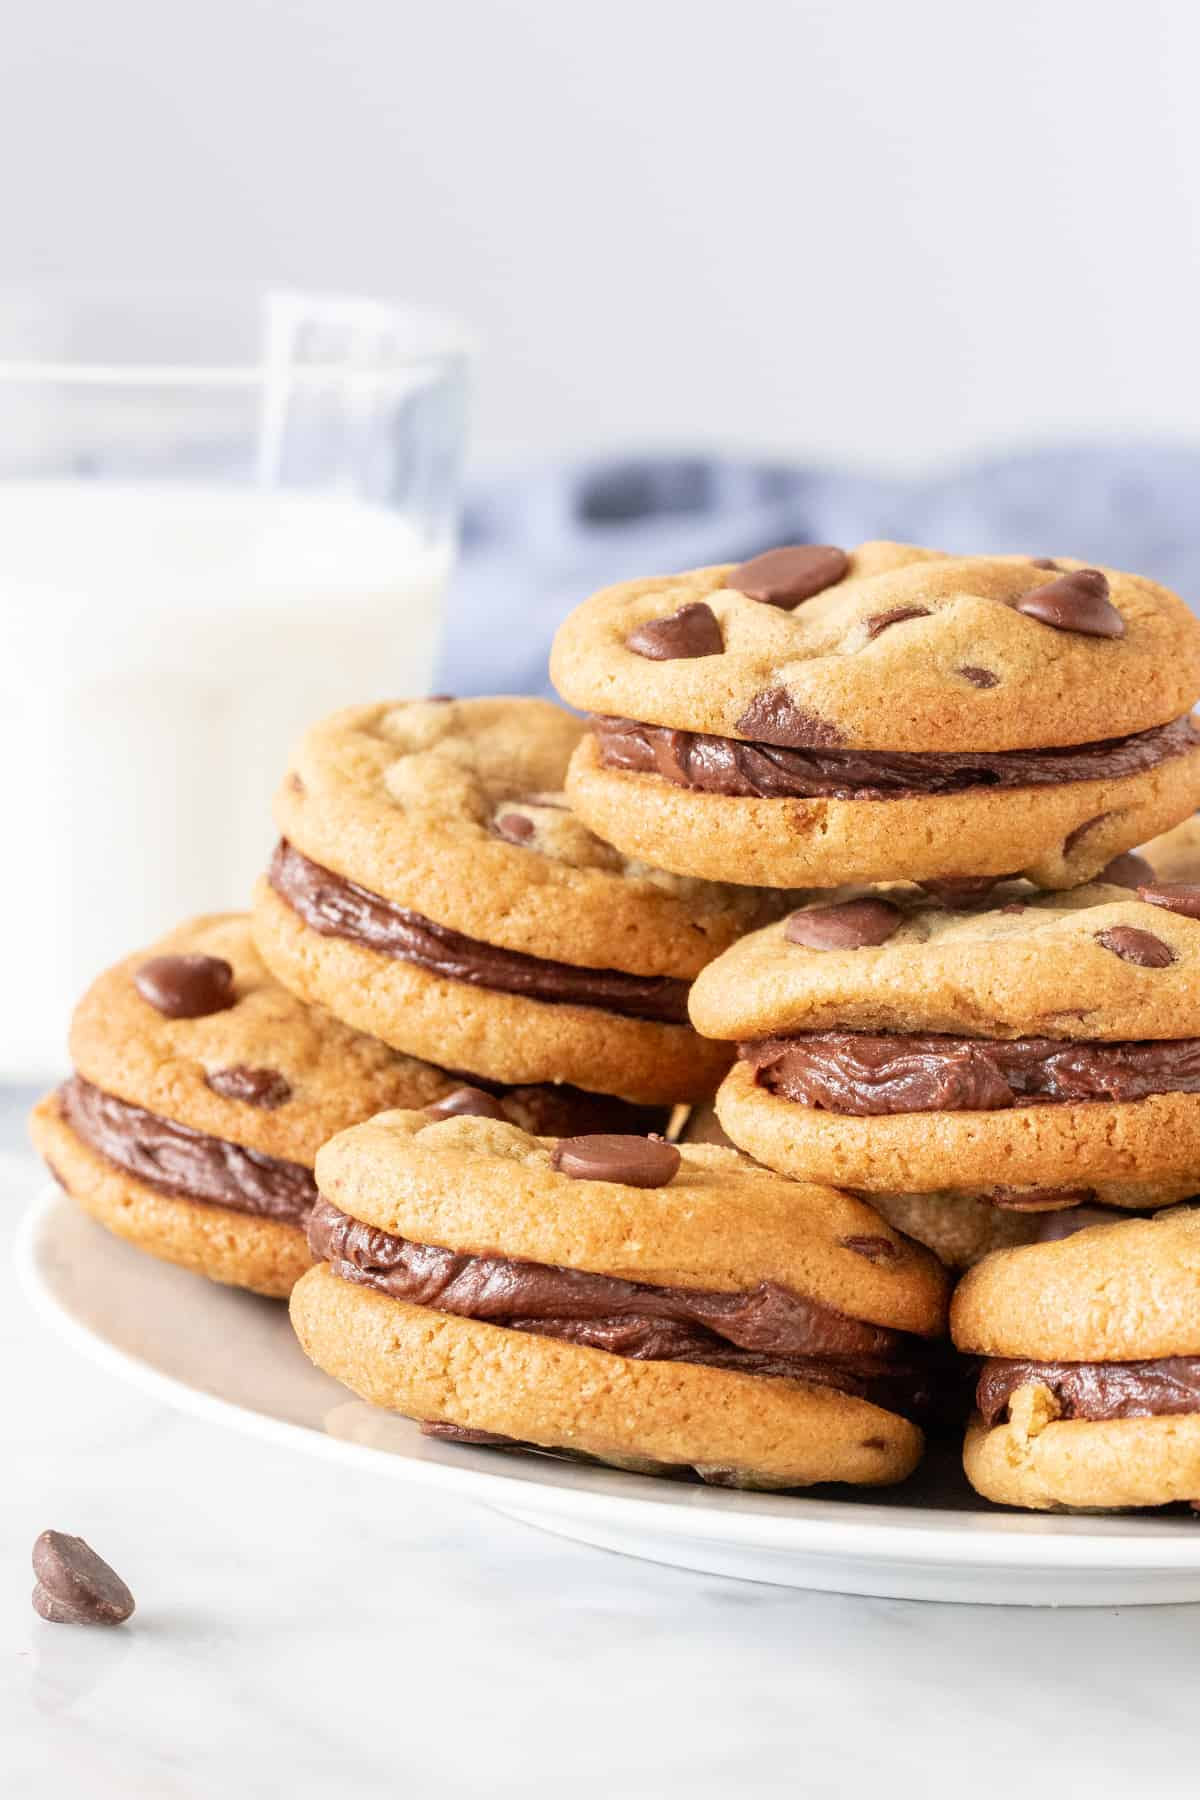 Plate of chocolate chip sandwich cookies